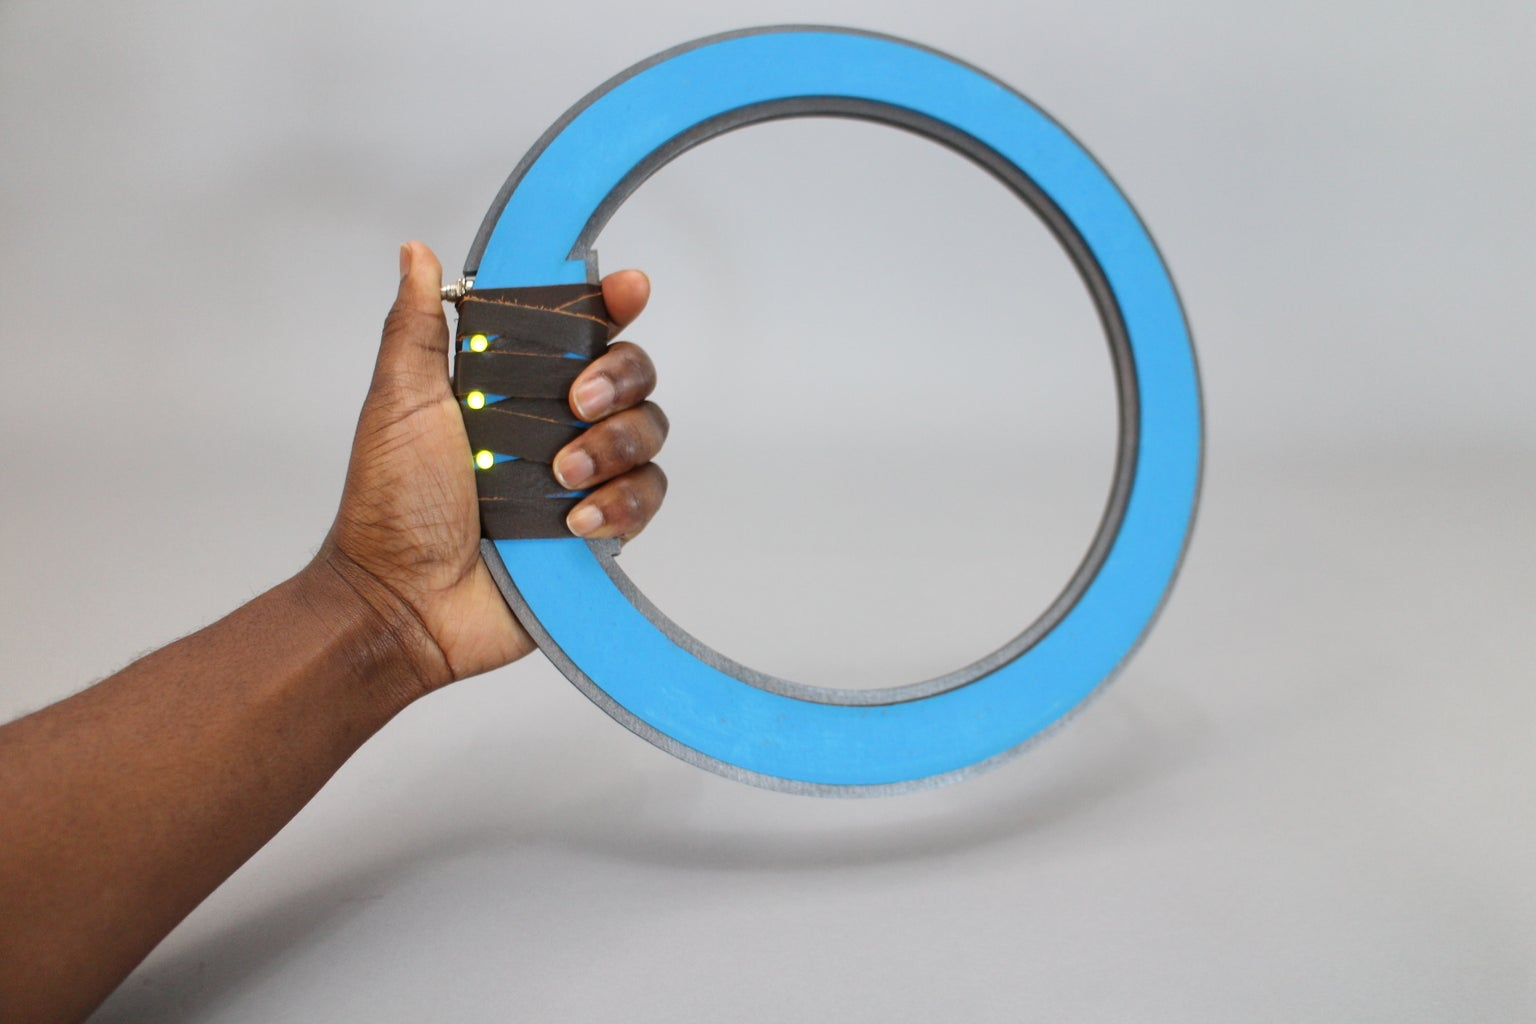 Test Out Your Ring Blades!